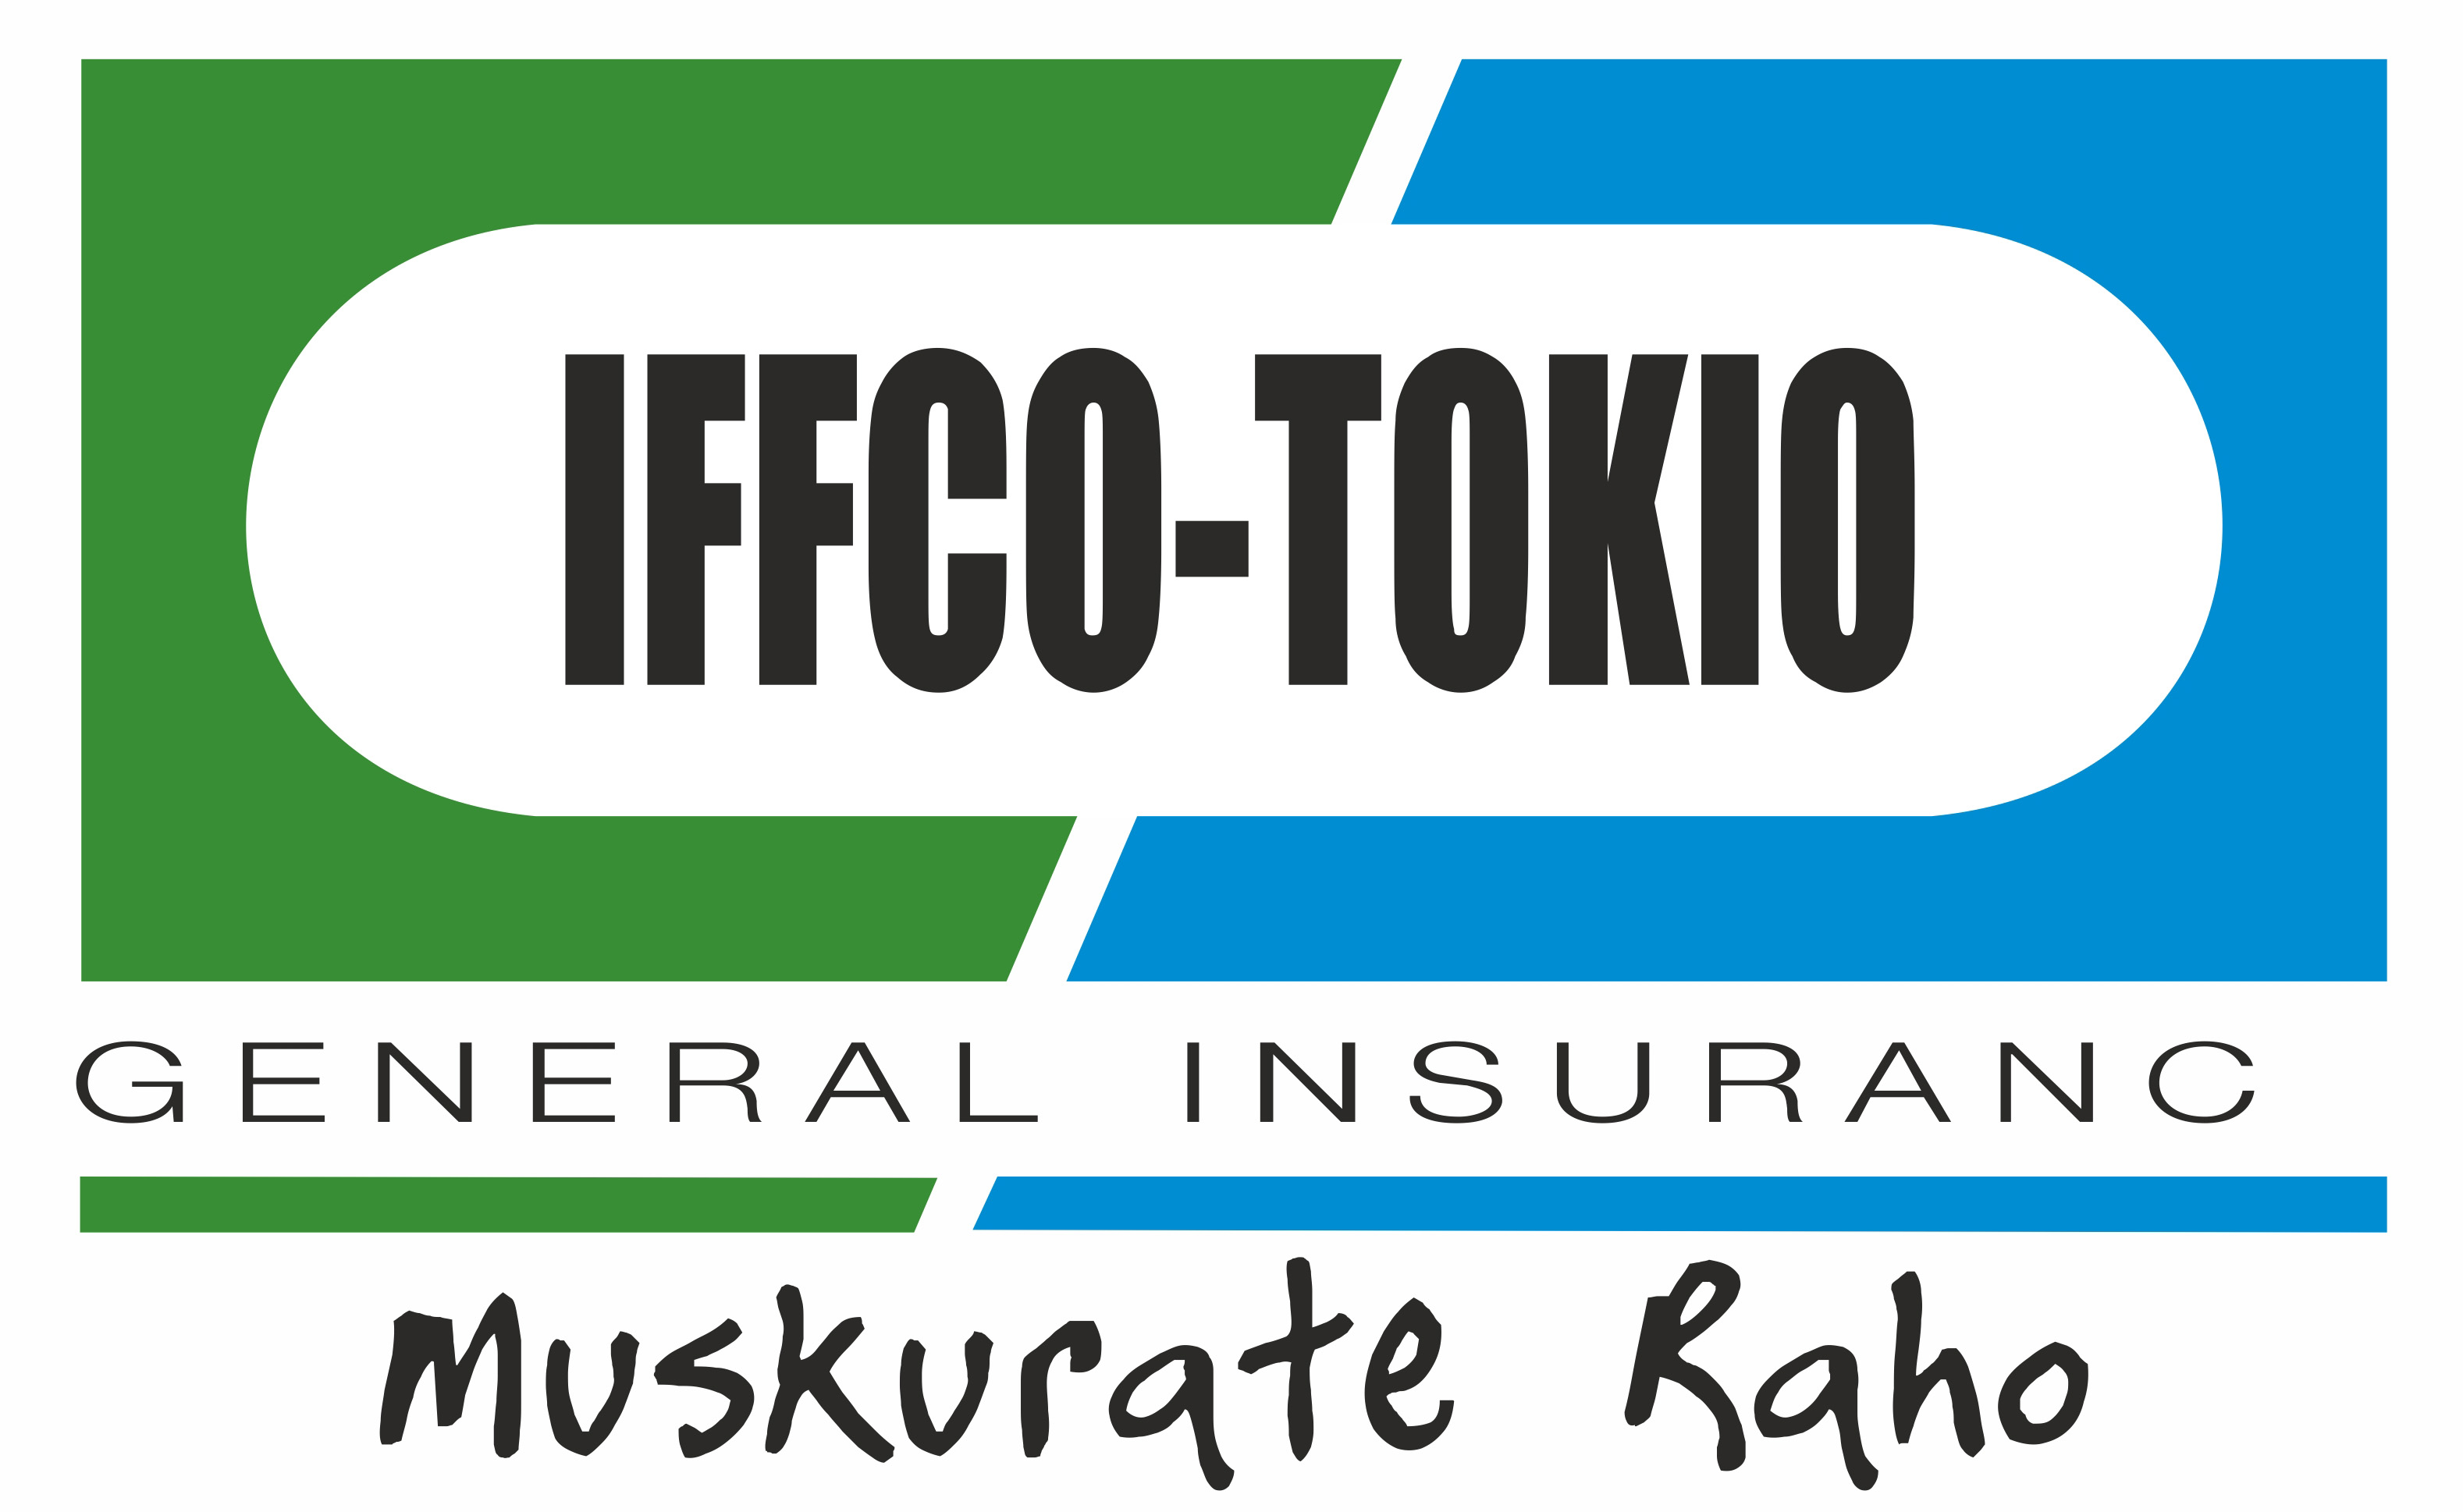 IFFCO Tokio Insurance Customer Care Toll Free Number, Support Email Id